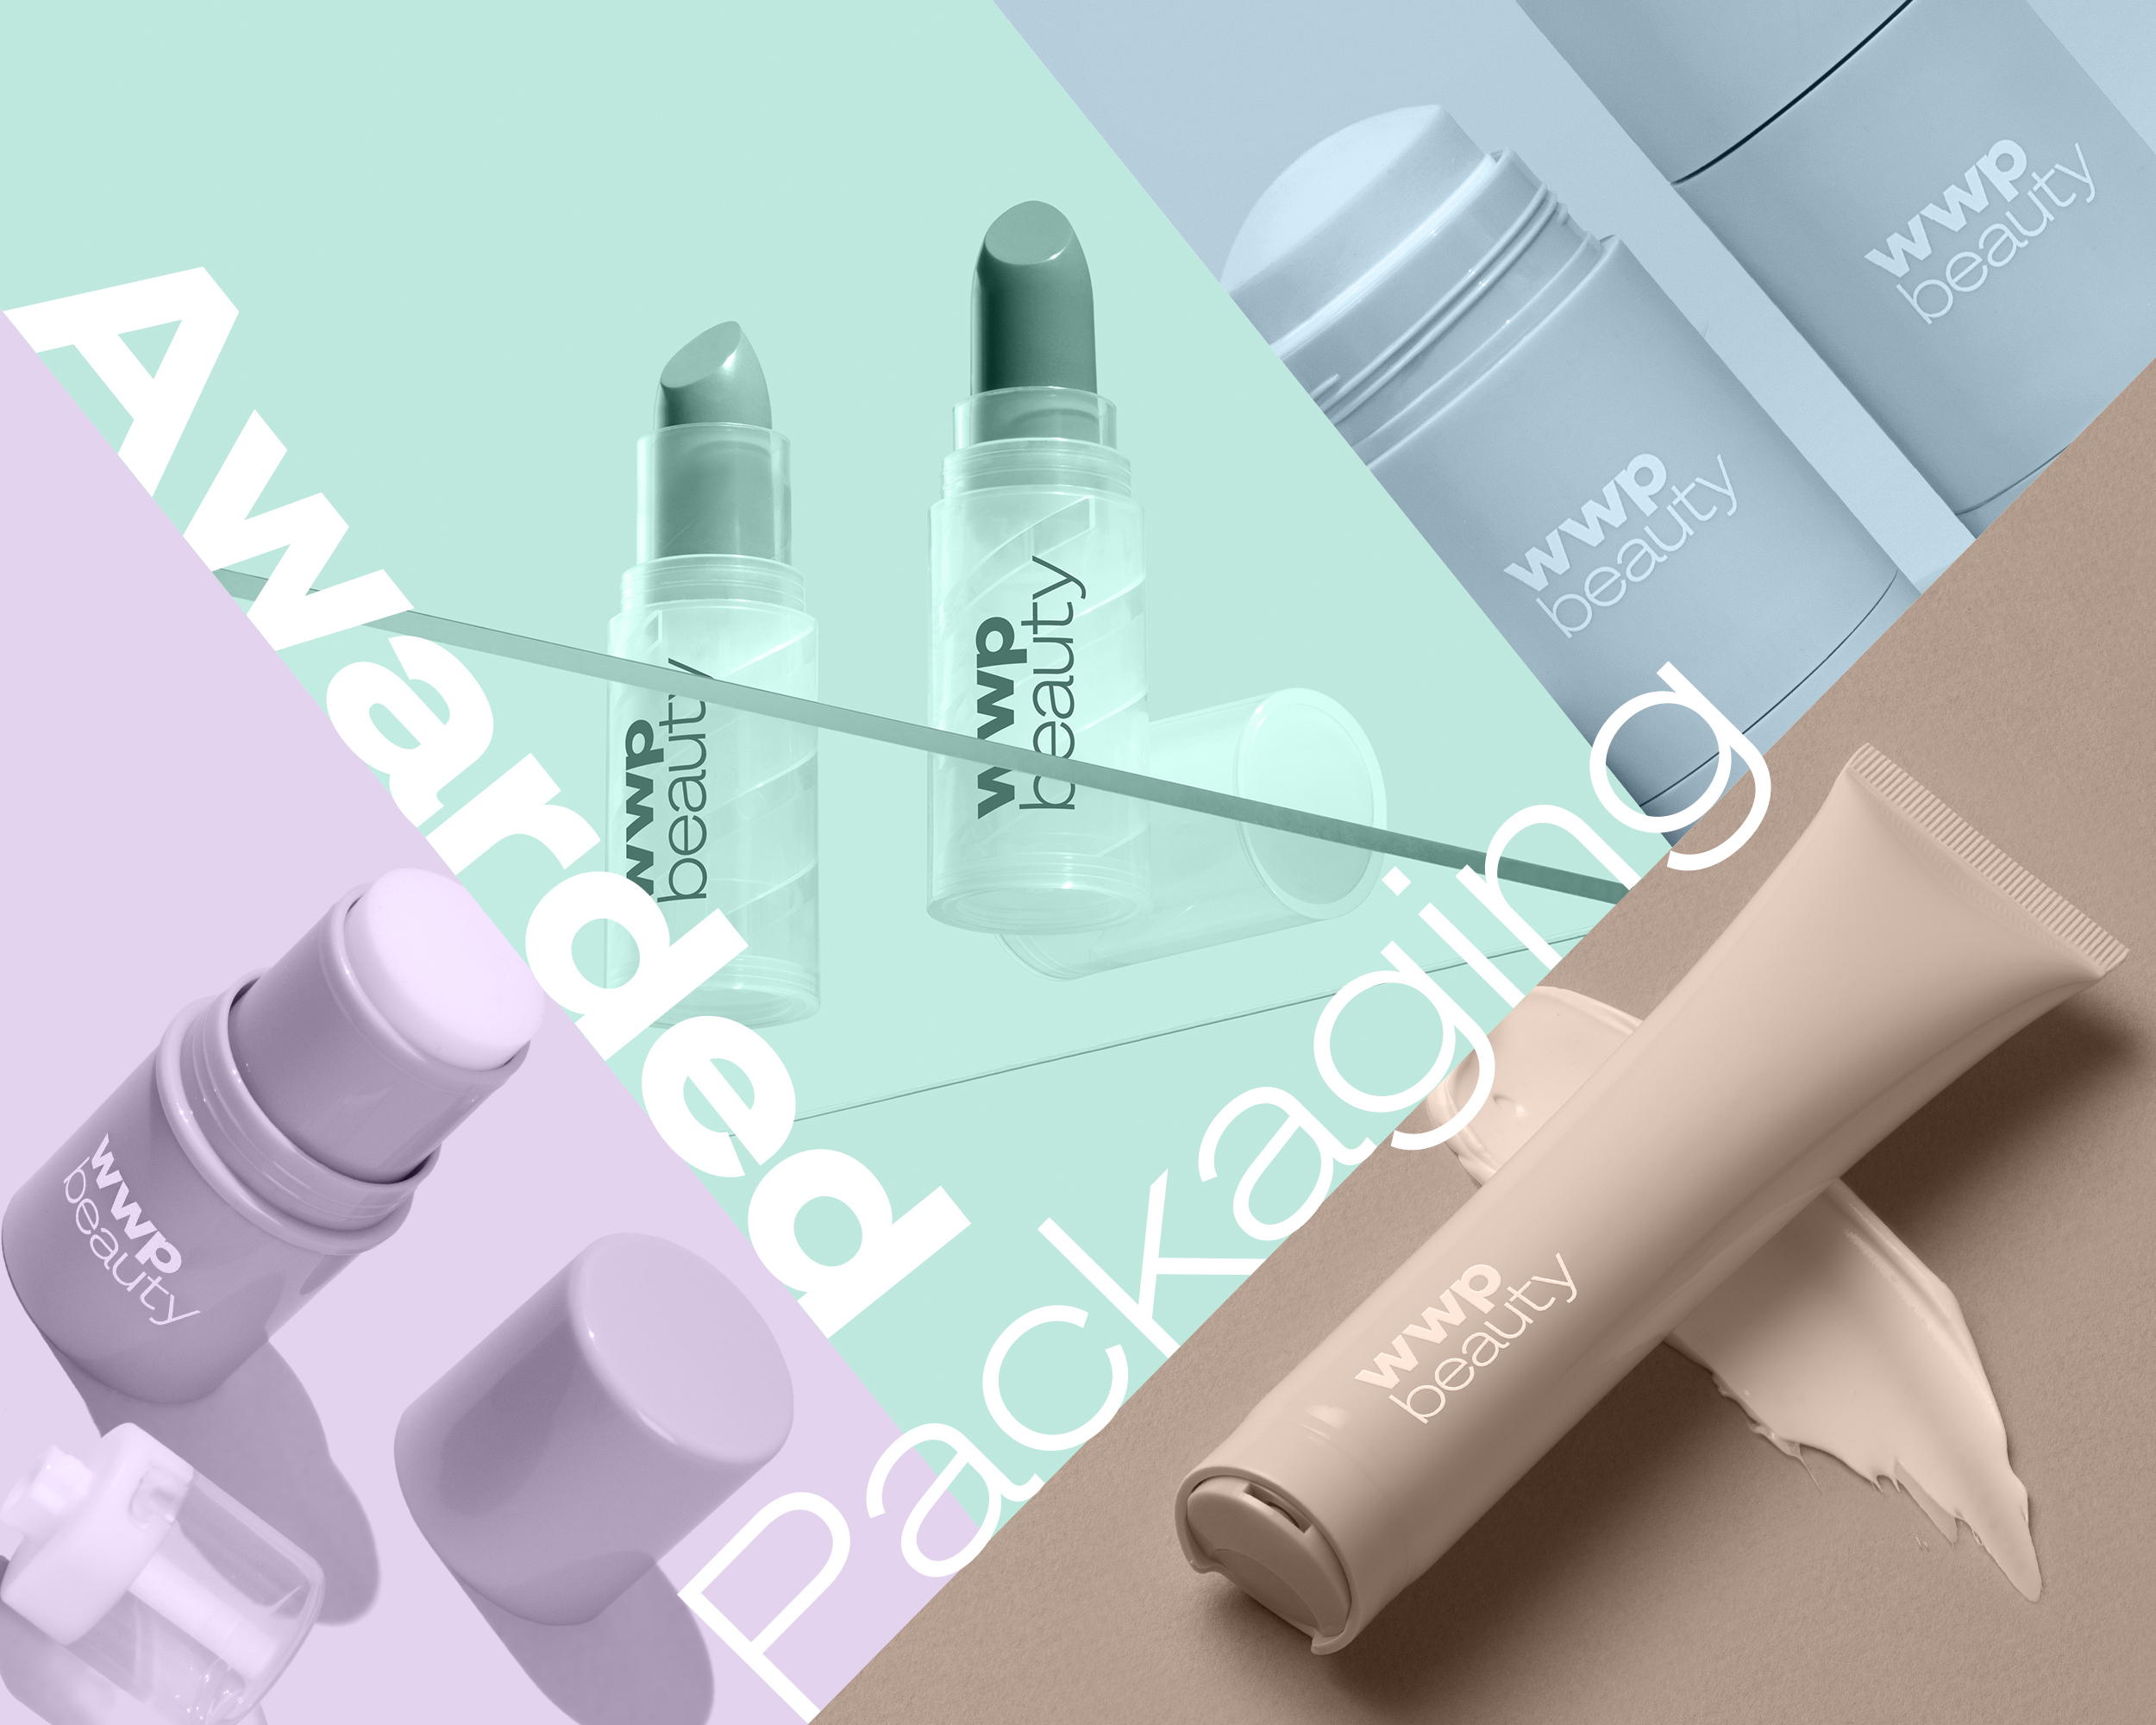 WWP Beauty Wins Multiple Awards in Prestigious Beauty Packaging Design Competitions